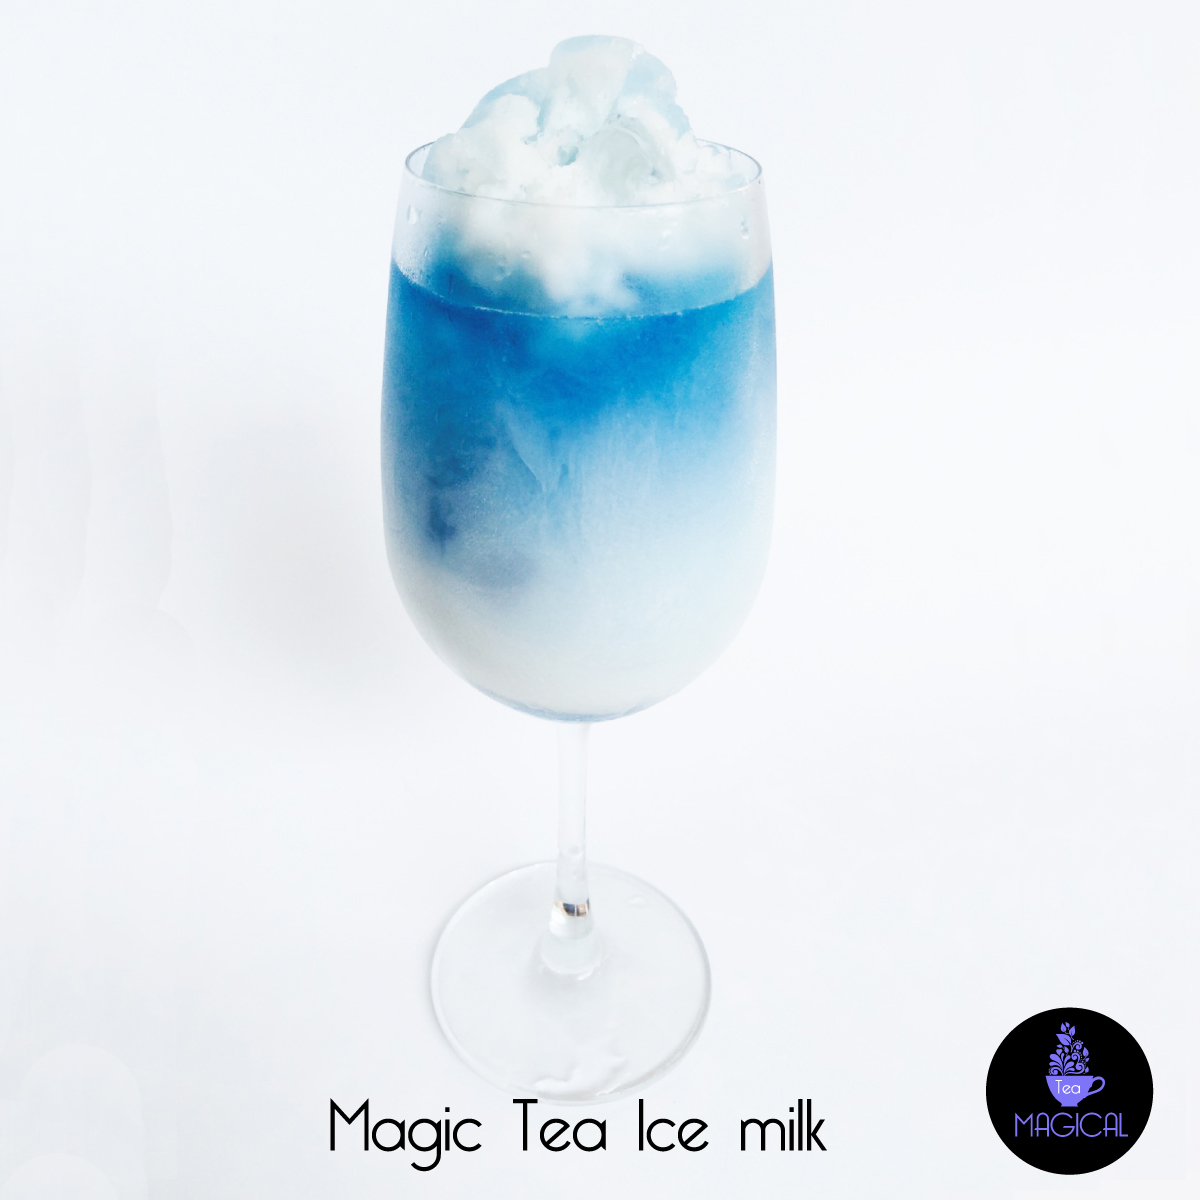 Magic tea ice milk